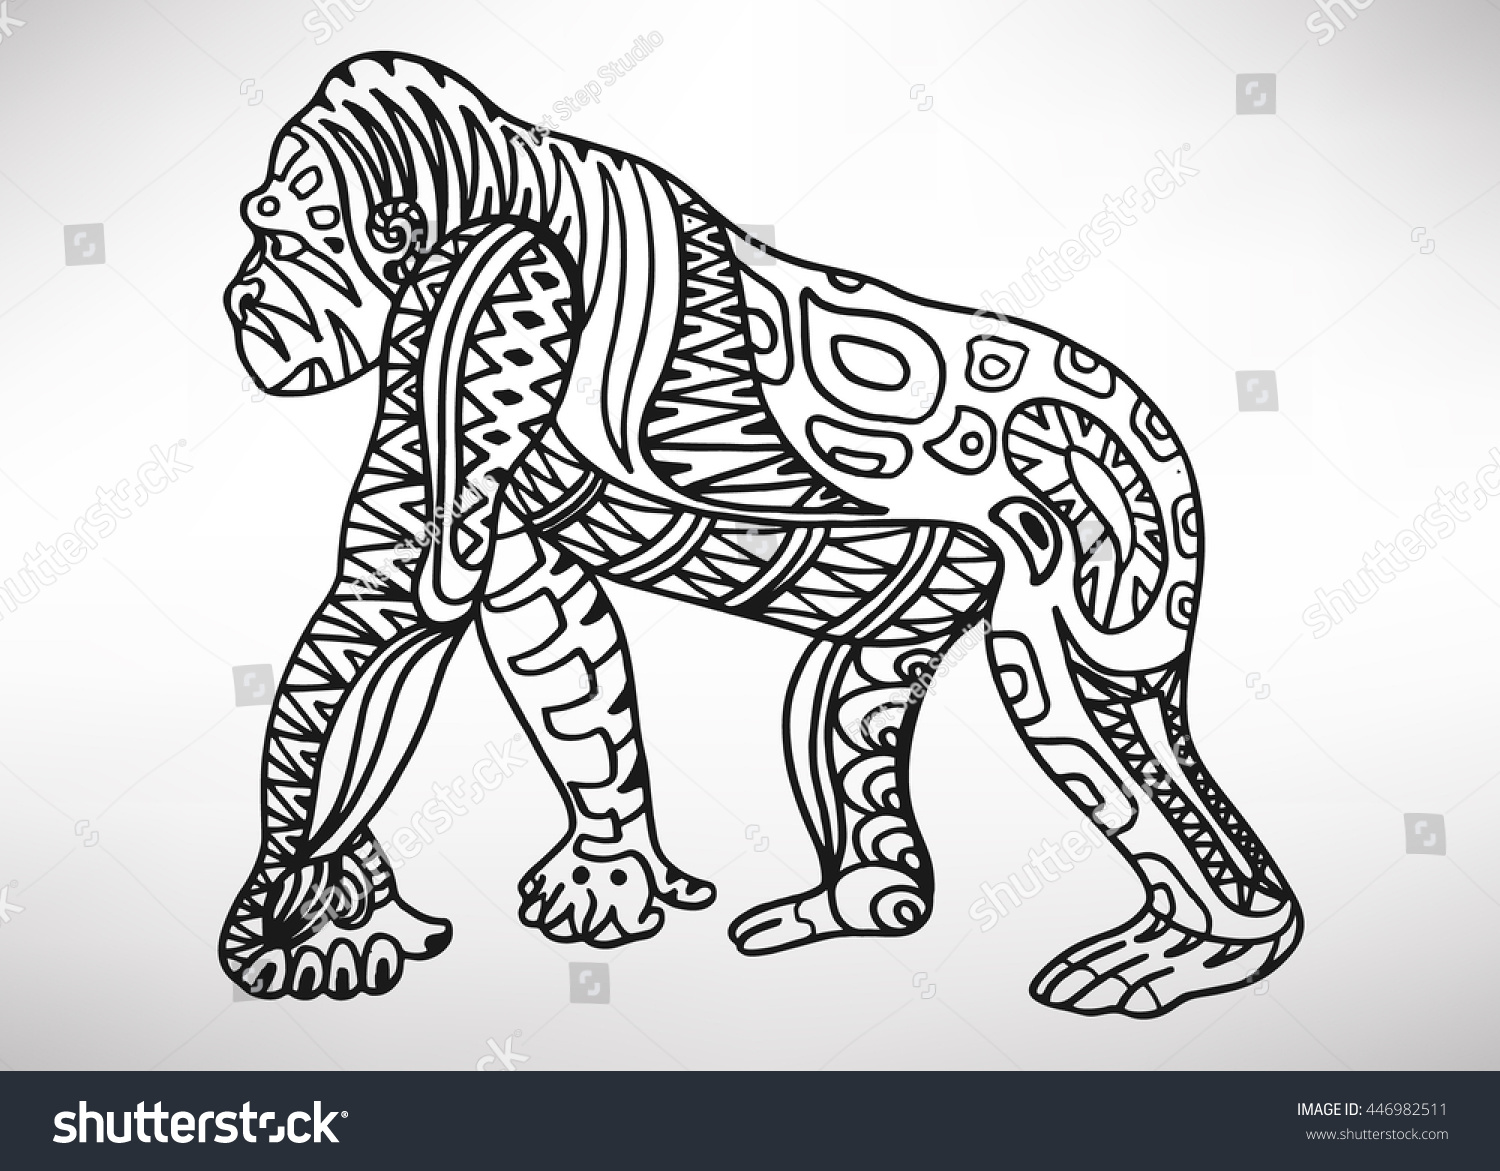 Gorilla Handdrawn Ethnic Pattern Coloring Page Stock Vector ...